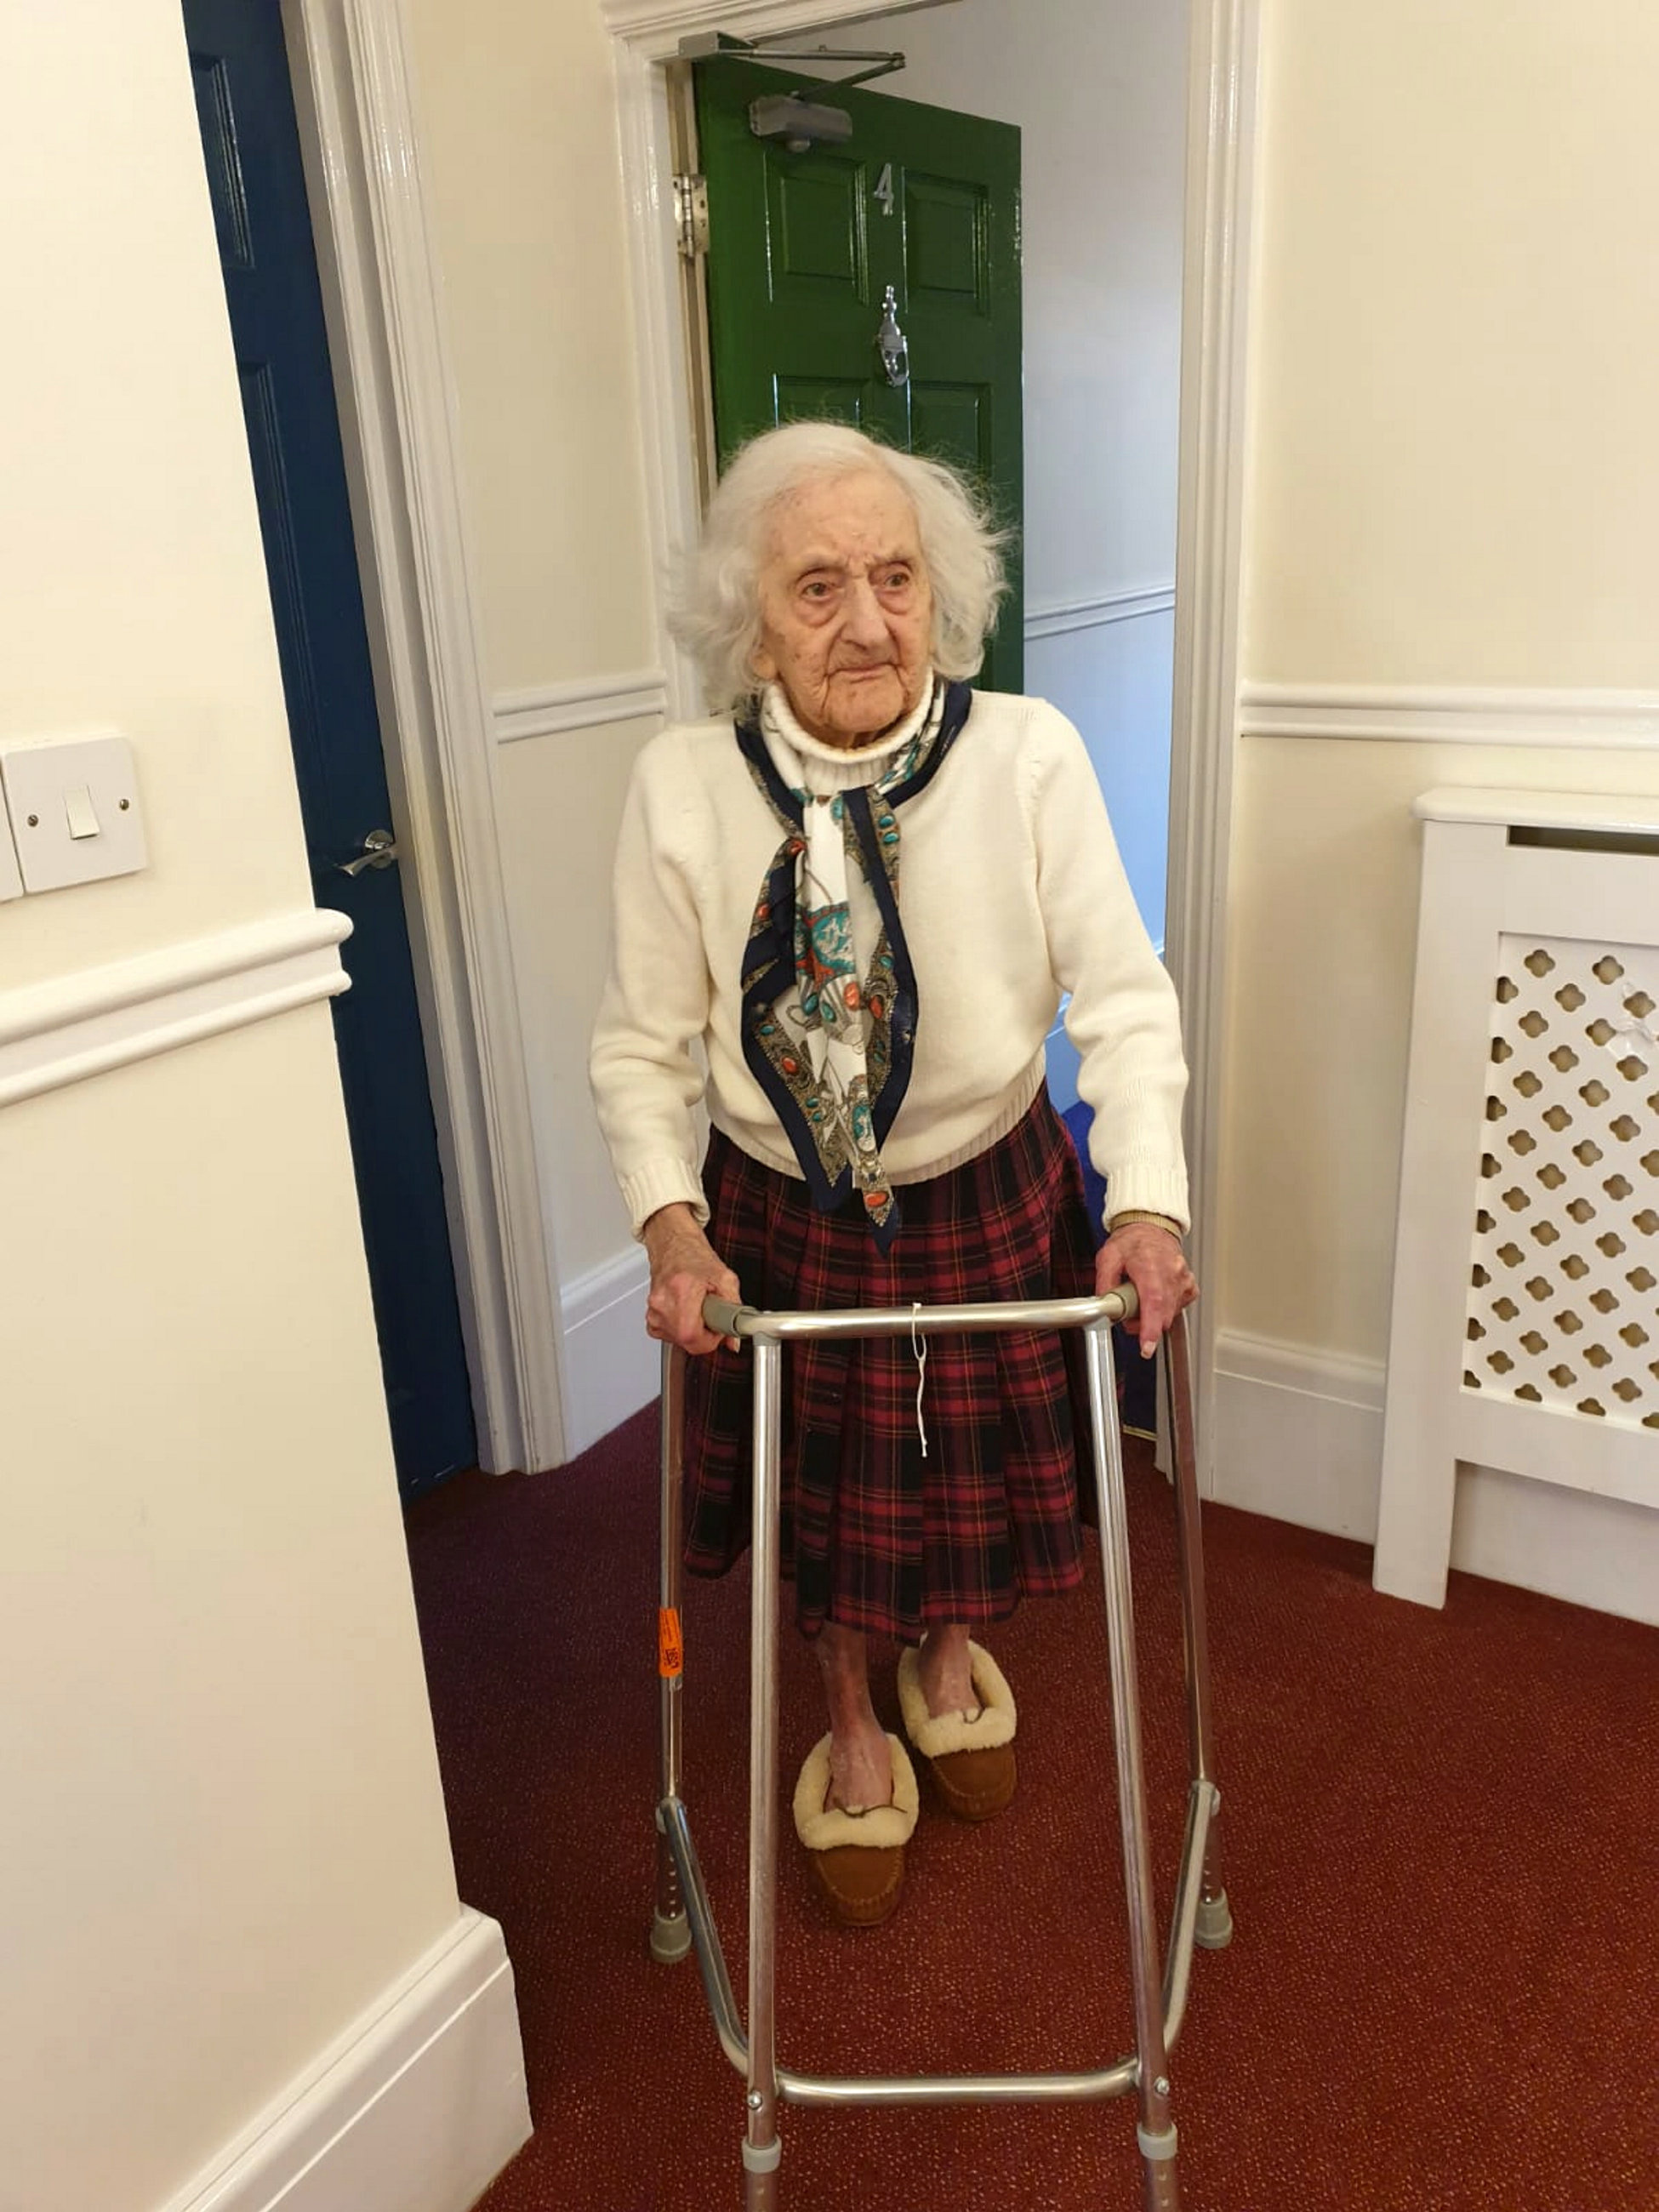 Betty Heath's family were given just hours to find her a new place to live. Credit: SWNS